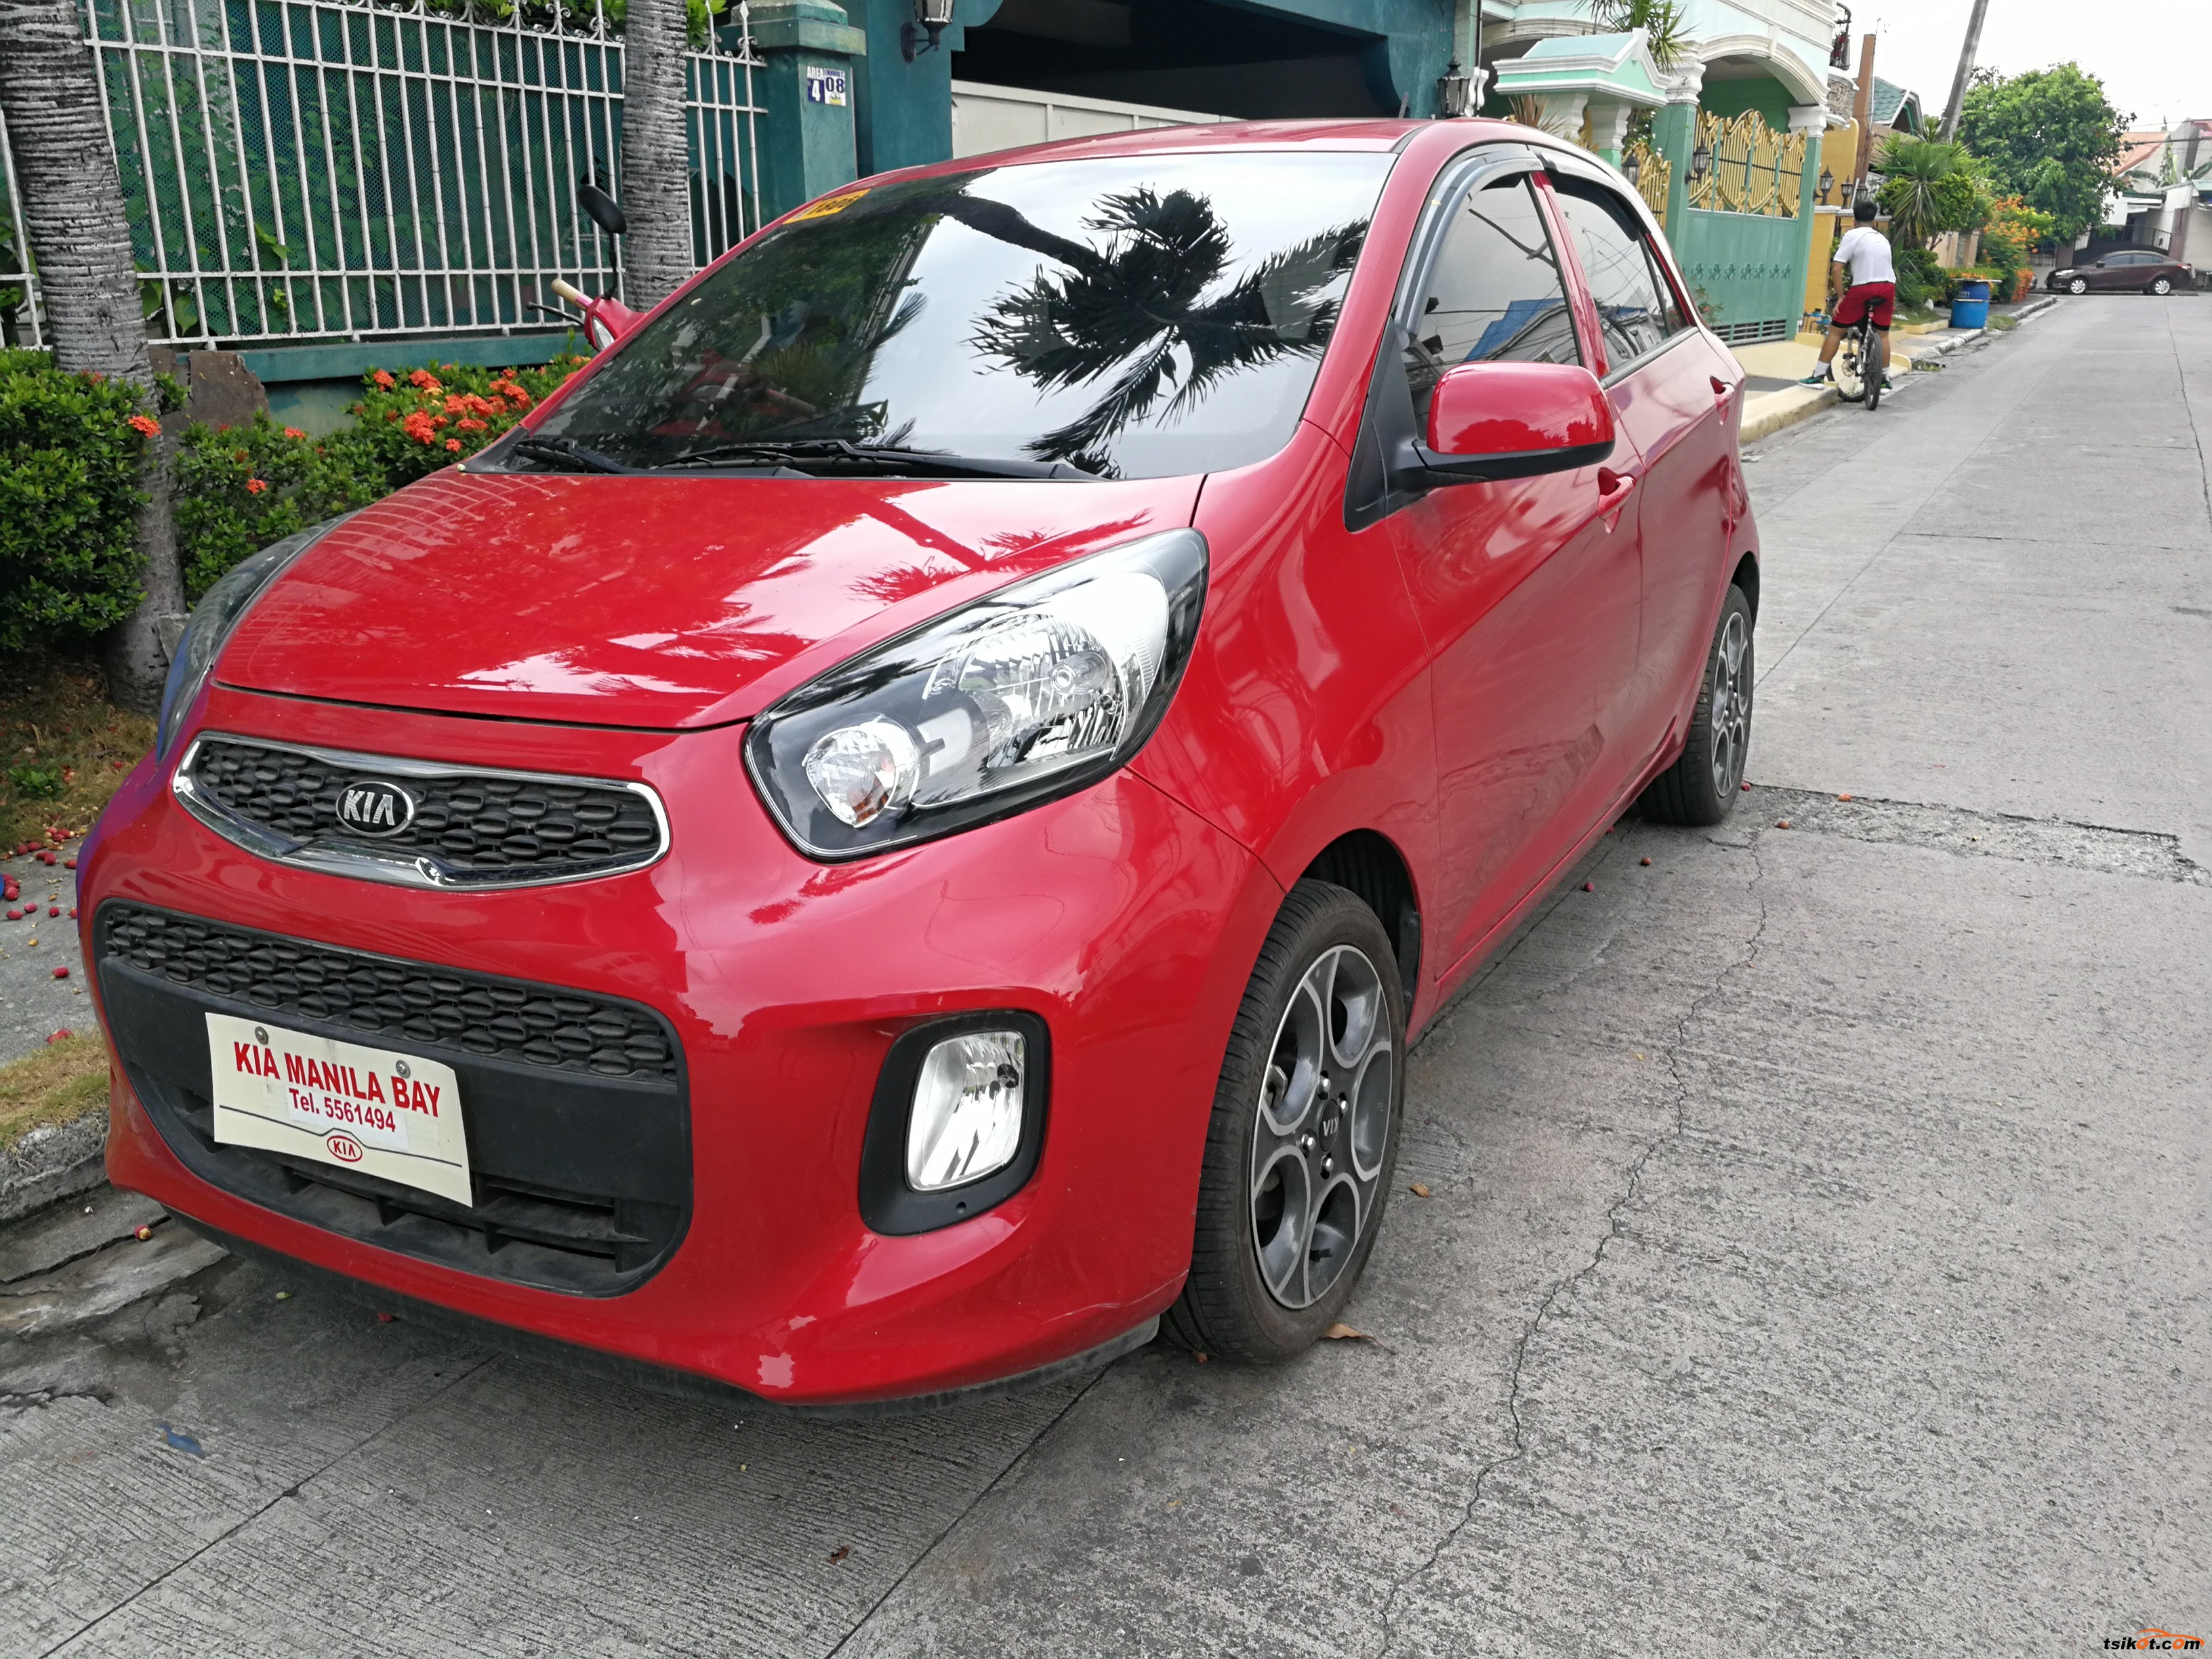 kia picanto 2016 car for sale metro manila philippines. Black Bedroom Furniture Sets. Home Design Ideas